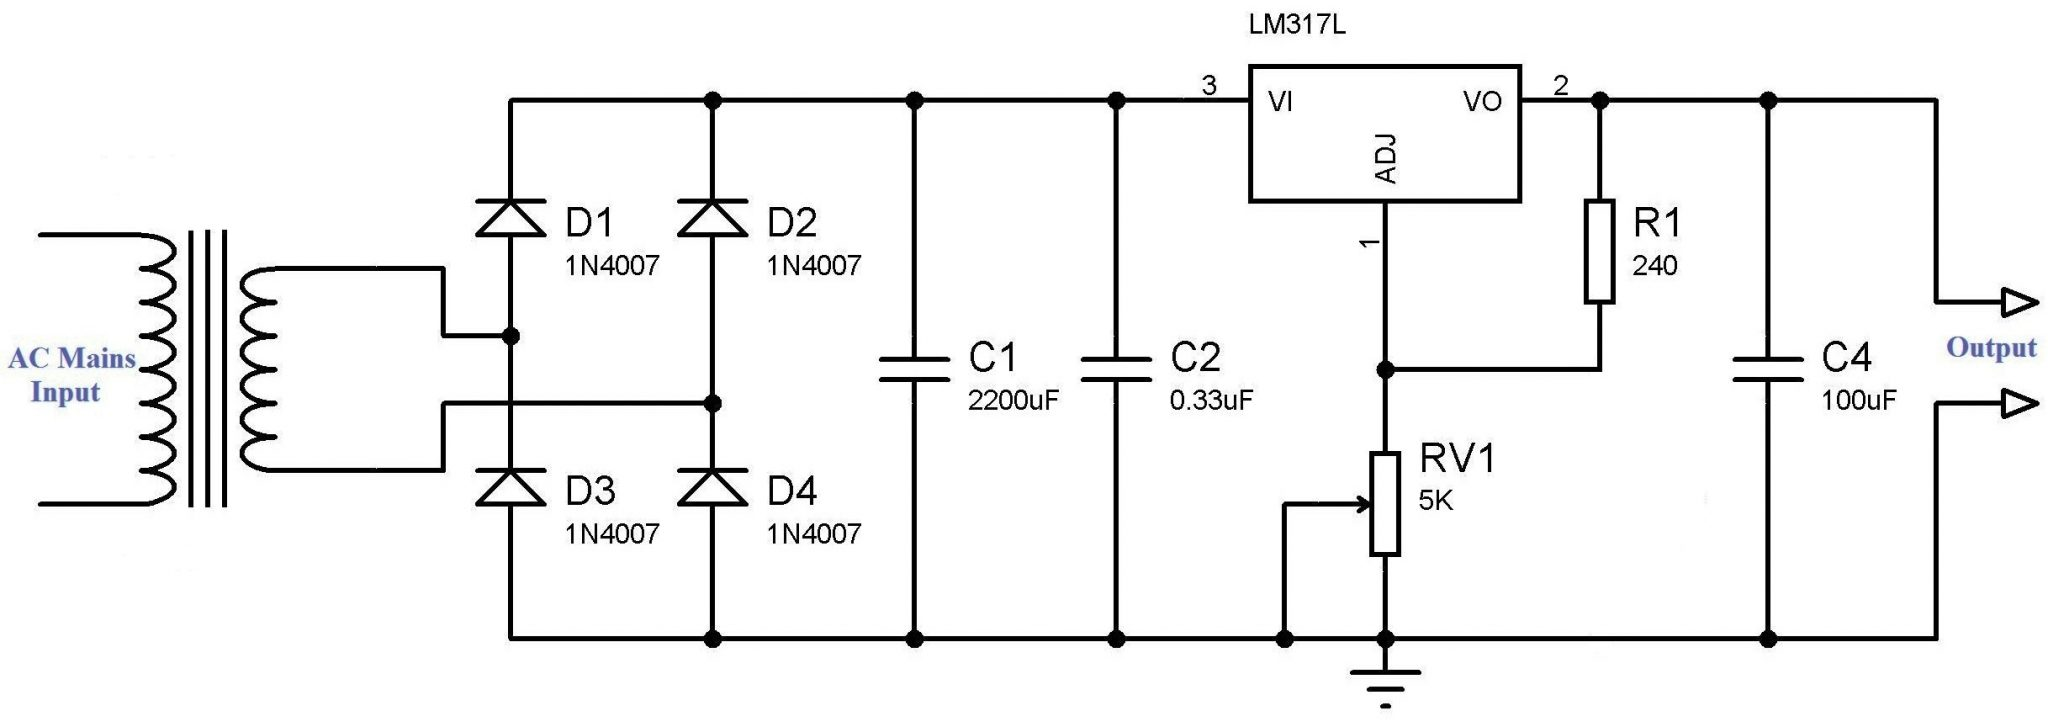 circuit diagram of power supply using lm317